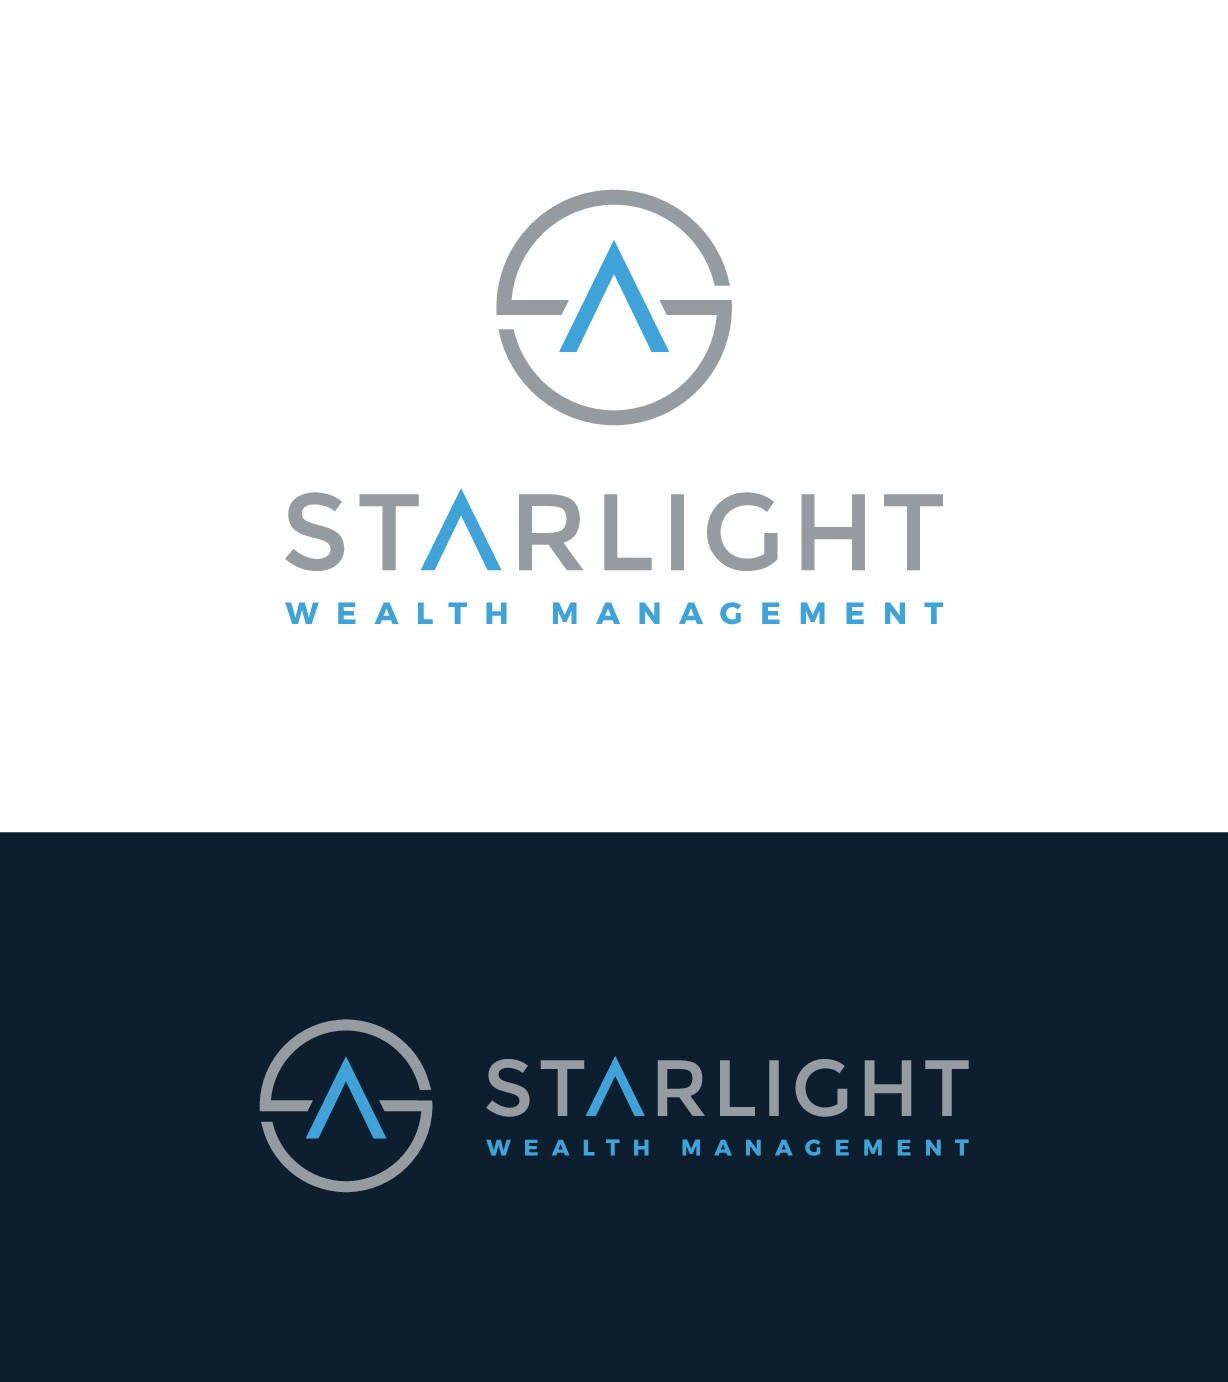 transparency, integrity, clarity, and professionalism for a wealth management firm.